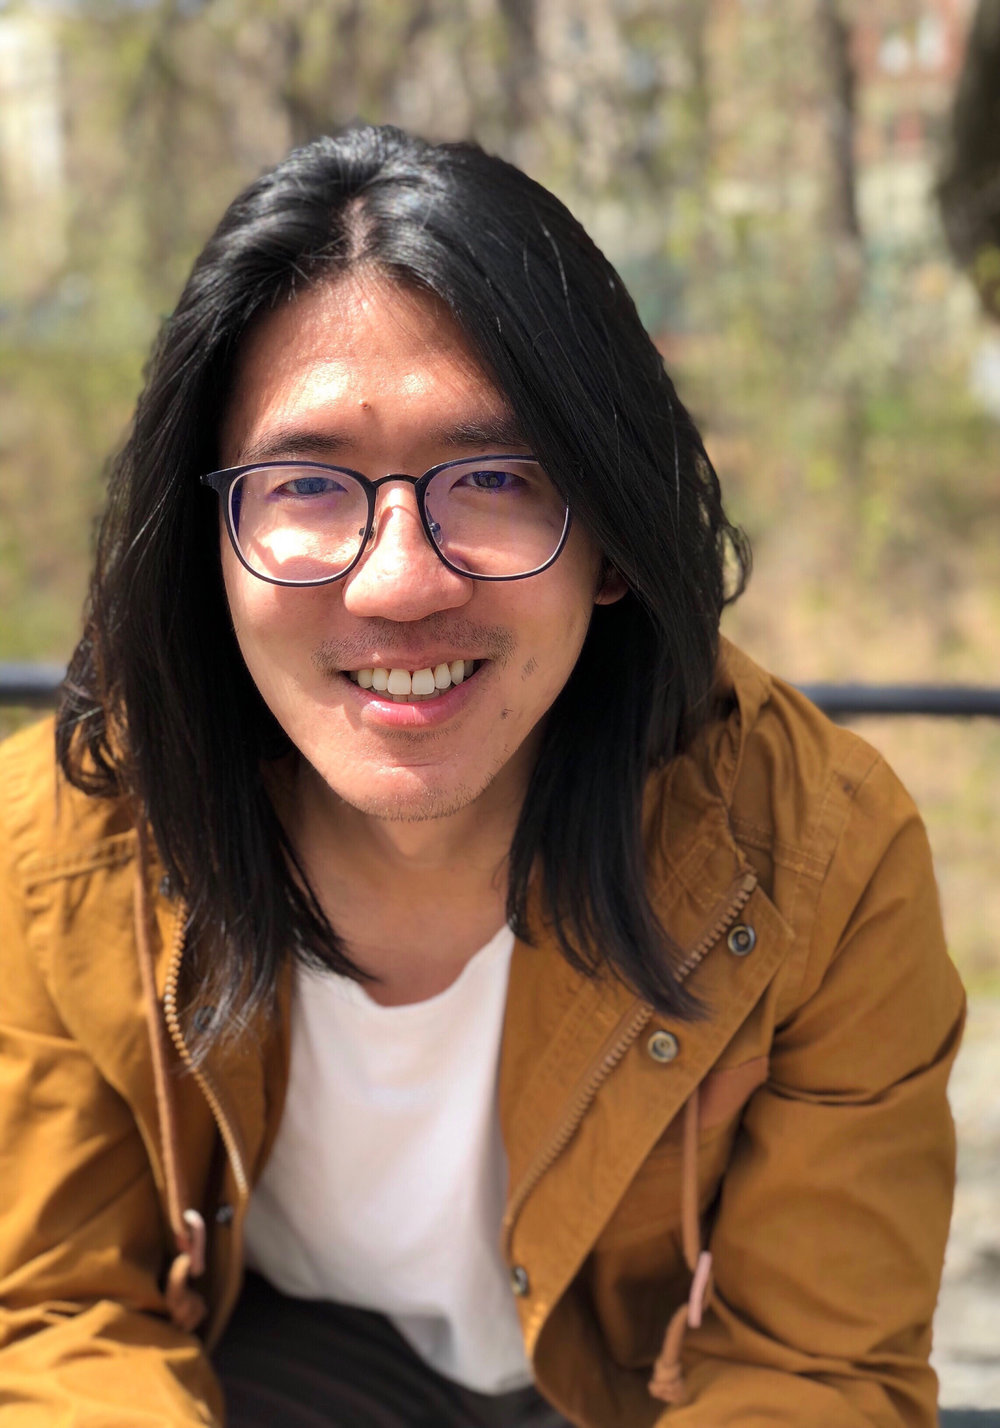 Yilong Liu (Playwright) - Yilong is a New York-based playwright, born and raised in Chongqing, China. His work has been produced or developed at SPACE on Ryder Farm, CAATA/Victory Gardens Theatre, New Ohio Theatre, The Flea Theatre, Urban Stages, East West Players, Queens Theatre, WildWind Performance Lab, FringeNYC, Kumu Kahua Theatre, Union Theatre (London), and others. Awards include an EST/Sloan Project New Play Commission (Curb), Kennedy Center's Paul Stephen Lim Playwriting Award (The Book of Mountains and Seas), Paula Vogel Playwriting Award (June is The First Fall), National Partners of the American Theatre Award for Playwriting (Joker), Po'okela Award for Best New Play (Joker), and an Asian Pacific American Friends of the Theatre Playwrights Scholarship. Currently, he's a resident playwright in the inaugural SERIALS Writers Room at The Flea Theatre. Yilong received a BA in Chinese Language and Literature from Beijing Normal University and an MFA in Playwriting from University of Hawai'i.